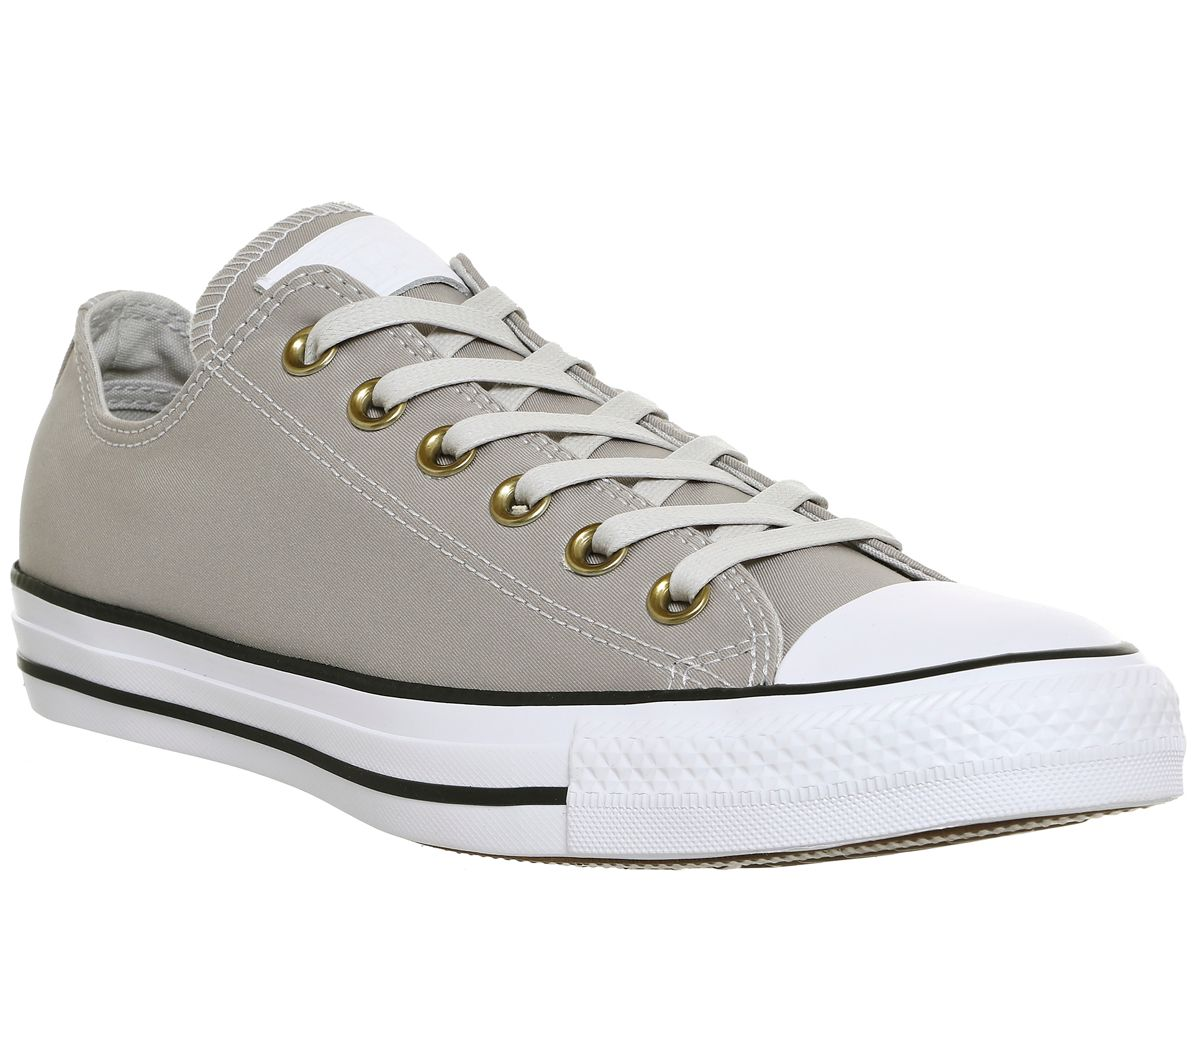 Converse All star low trainers, White